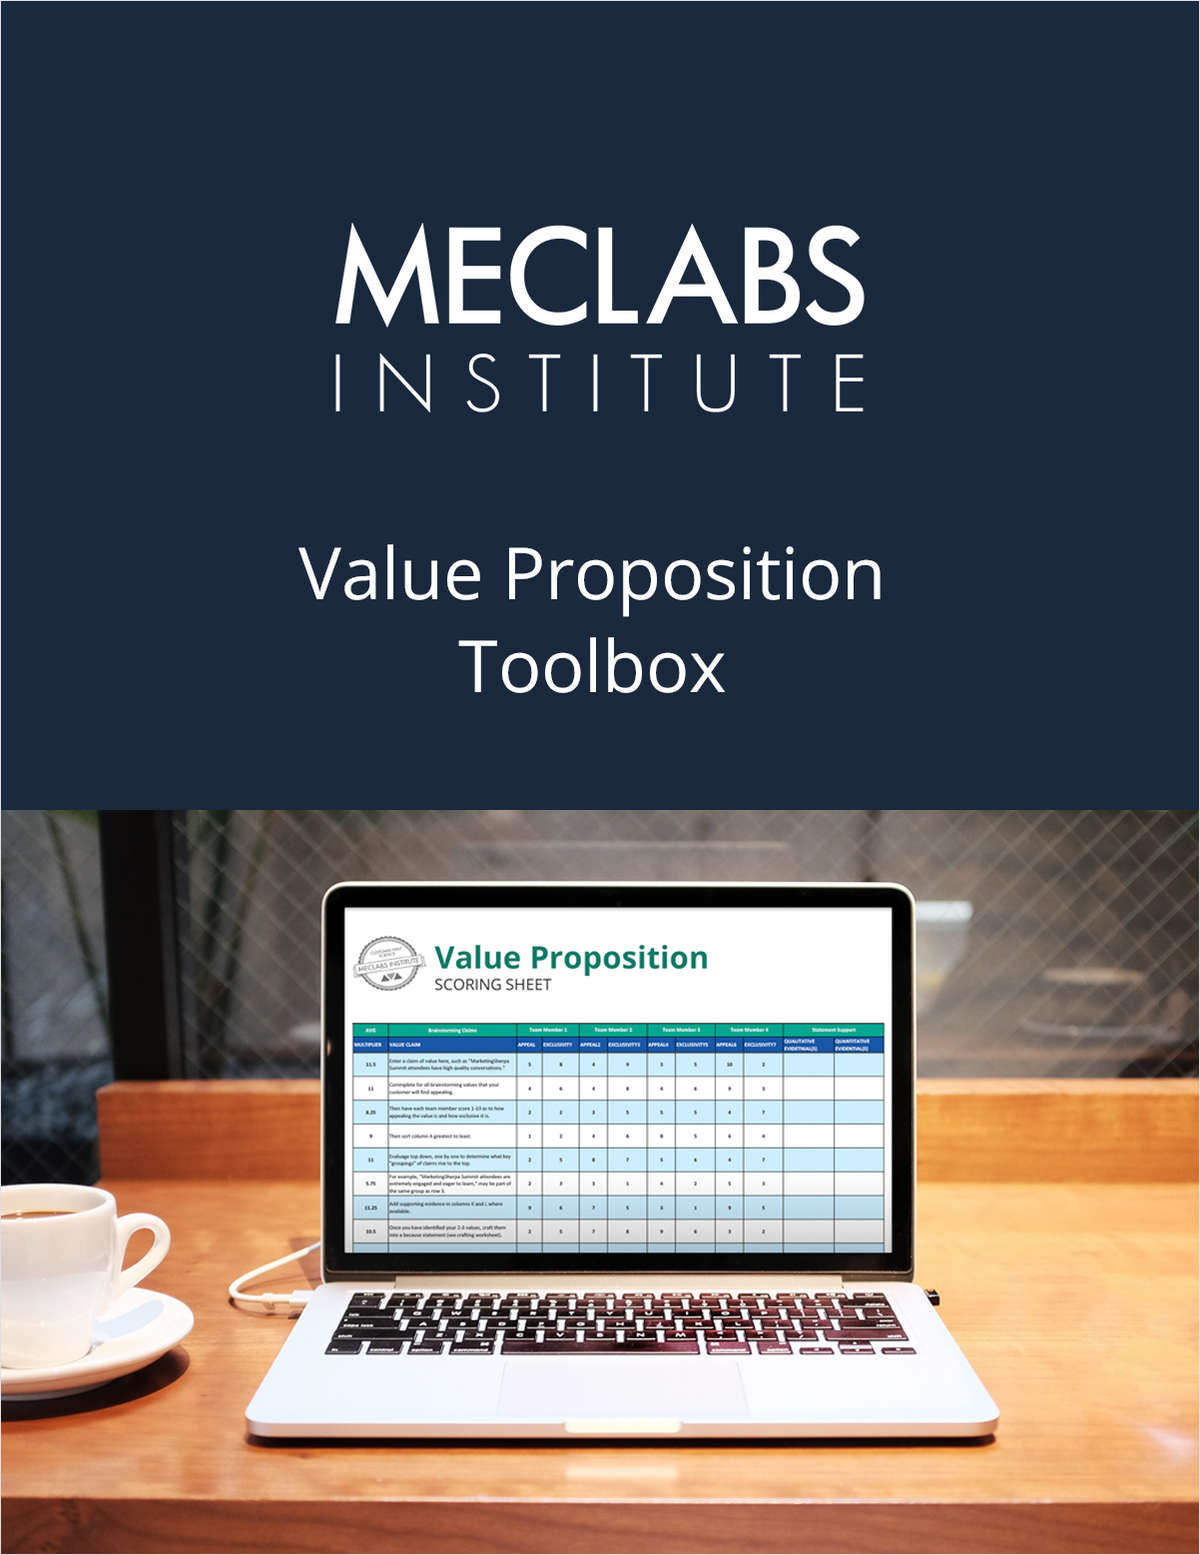 The Value Proposition Toolbox from MECLABS